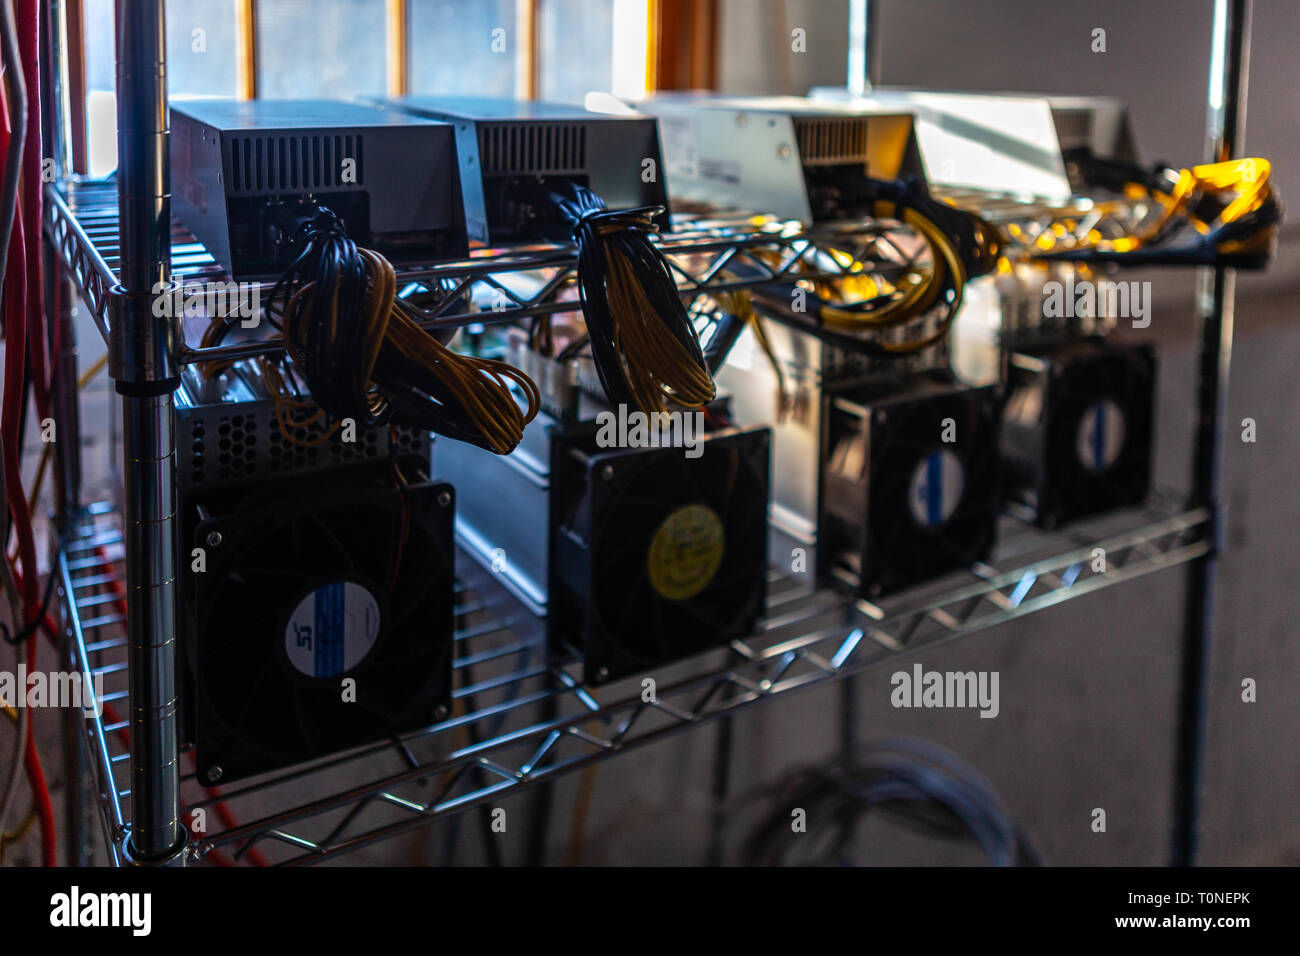 Hardware circuit board for mining cryptocurrency - financial technology and internet money -  blockchain bitcoin BTC Stock Photo